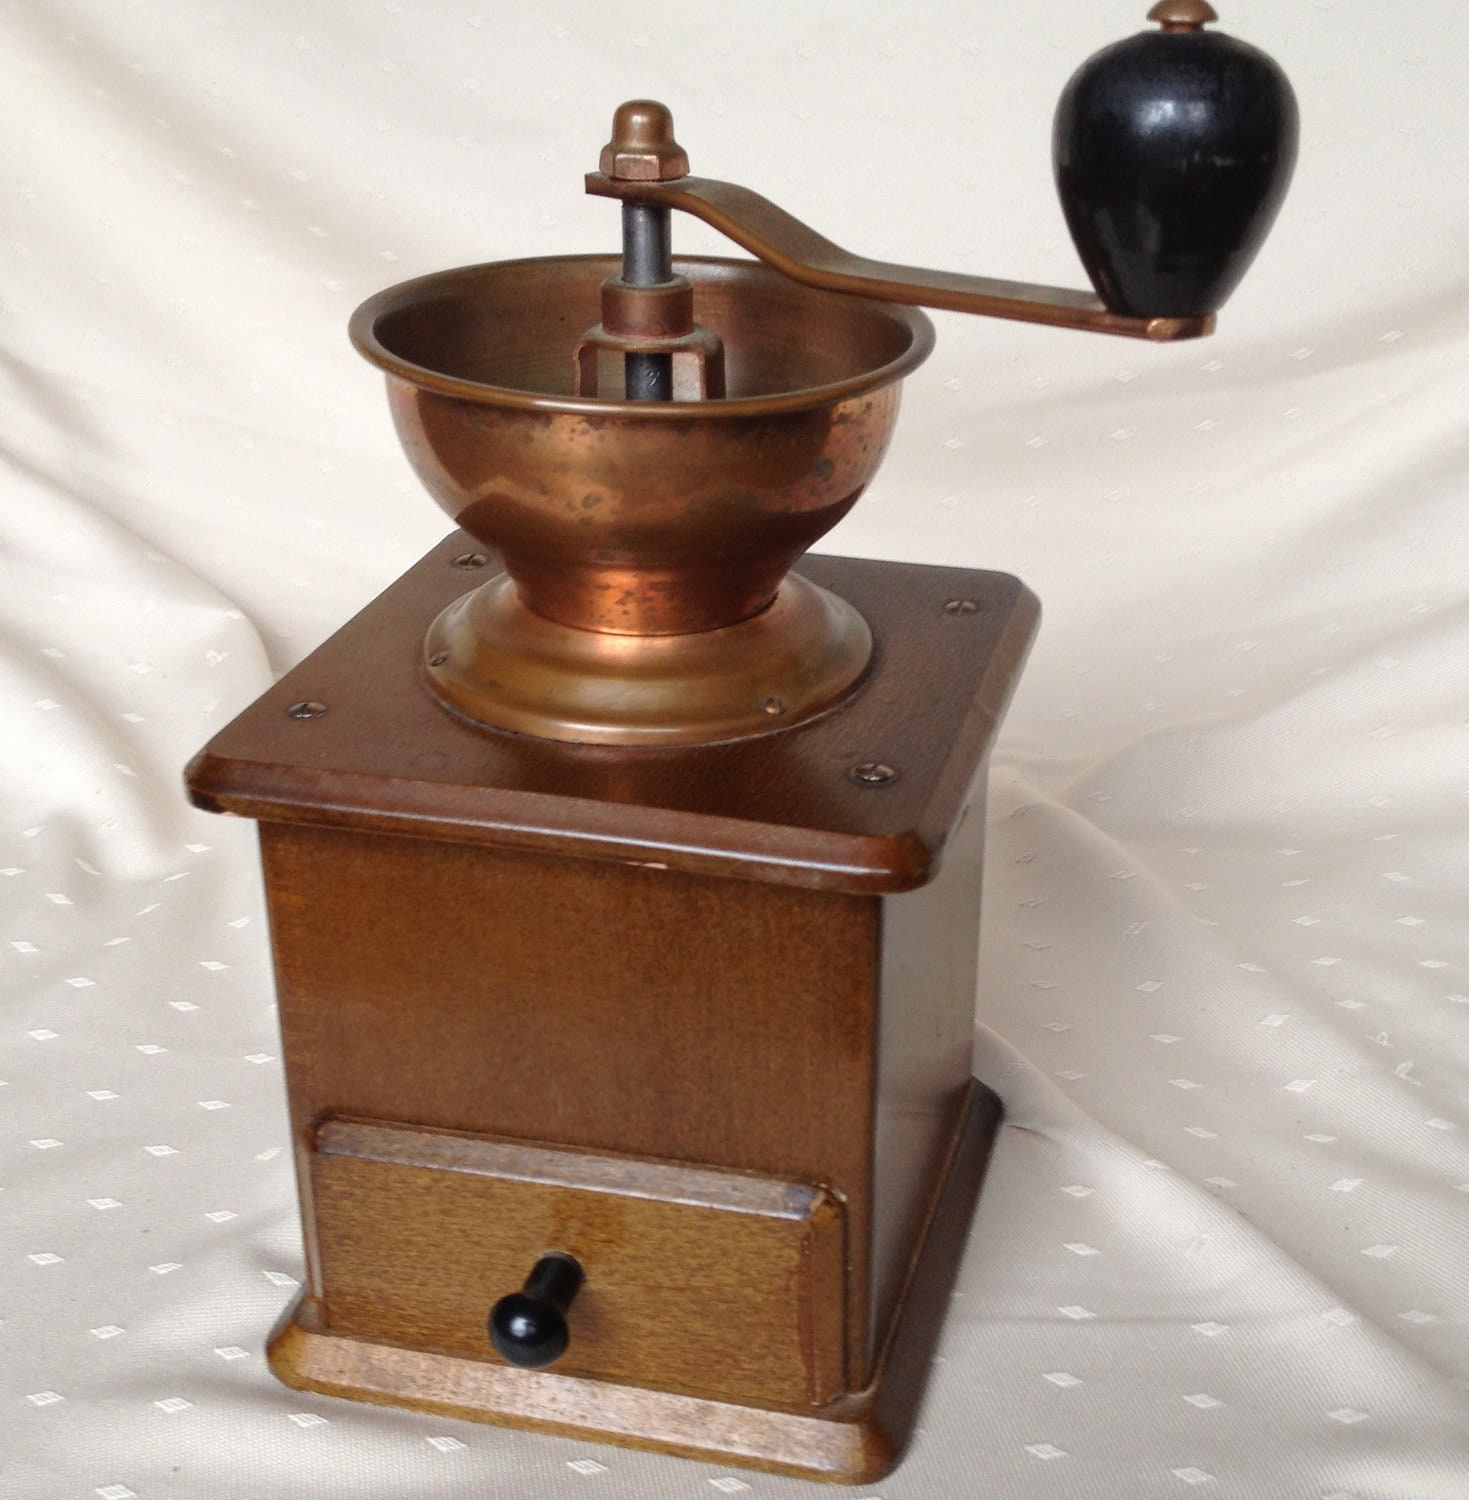 Vintage Coffee Grinder by Sun Manufacturing Co. | EBTH  |Coffee Grinders Antique Label